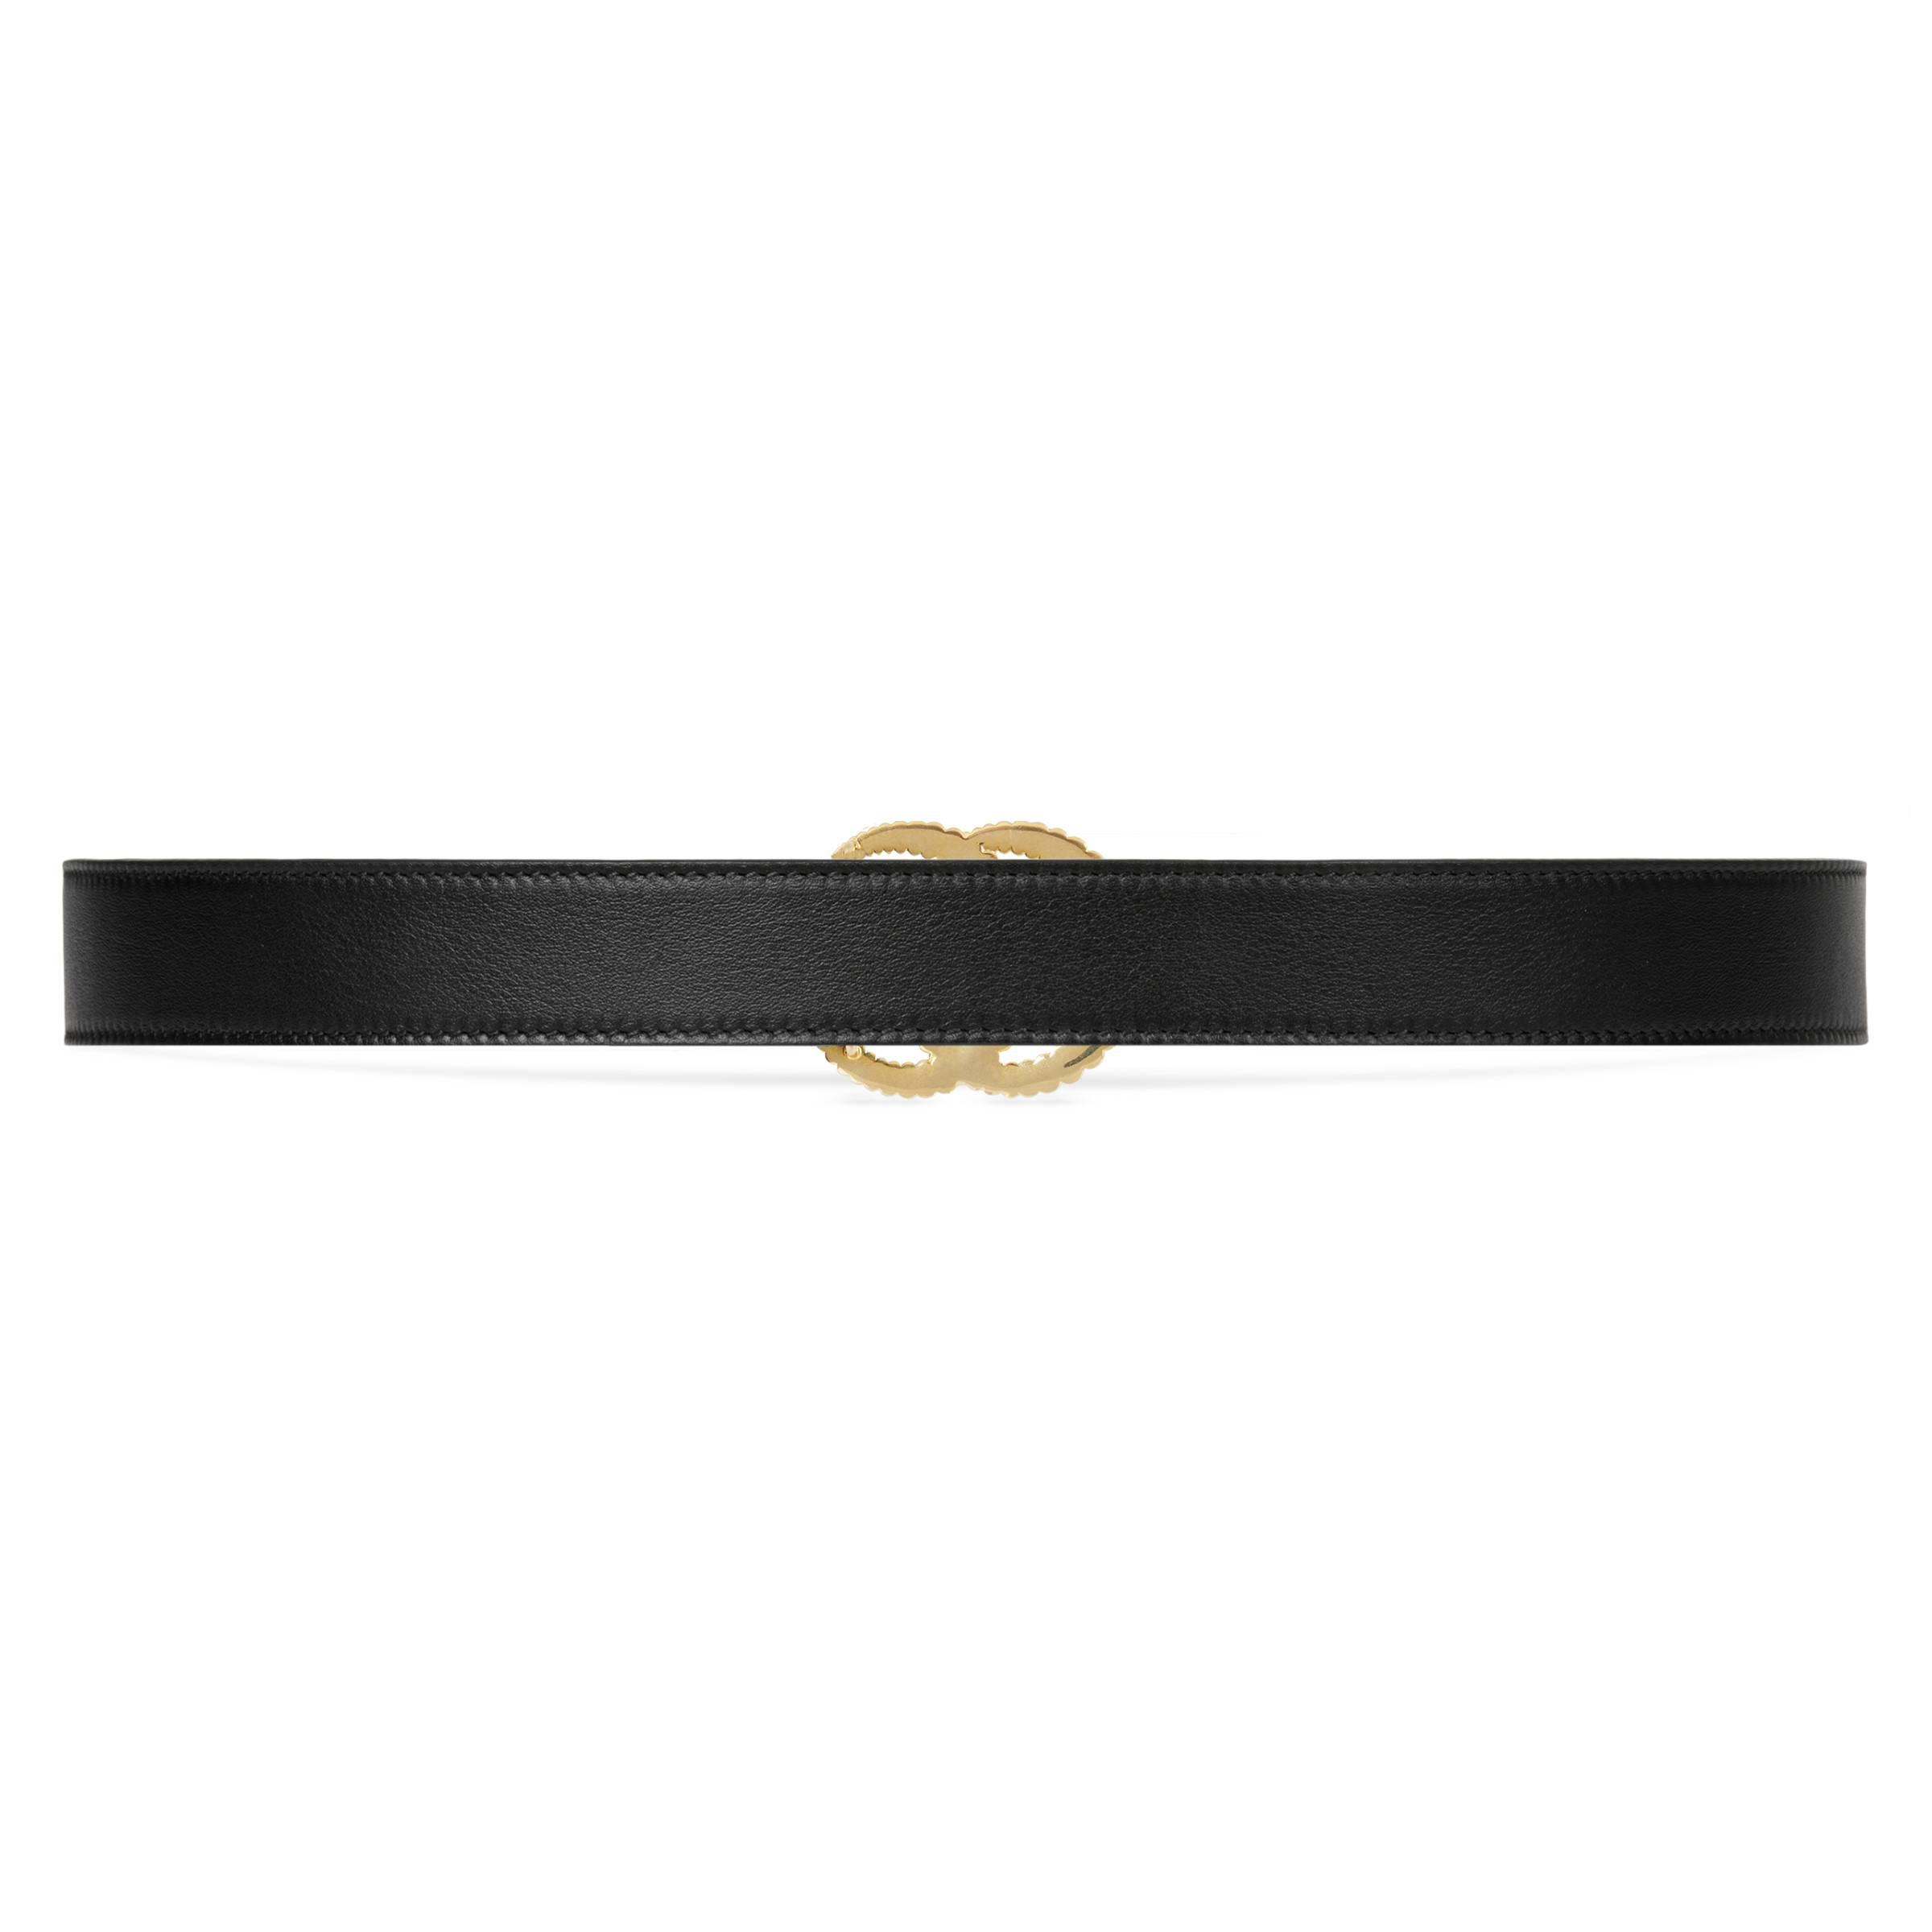 83ef0ed118a Gucci - Black Leather Belt With Torchon Double G Buckle - Lyst. View  fullscreen